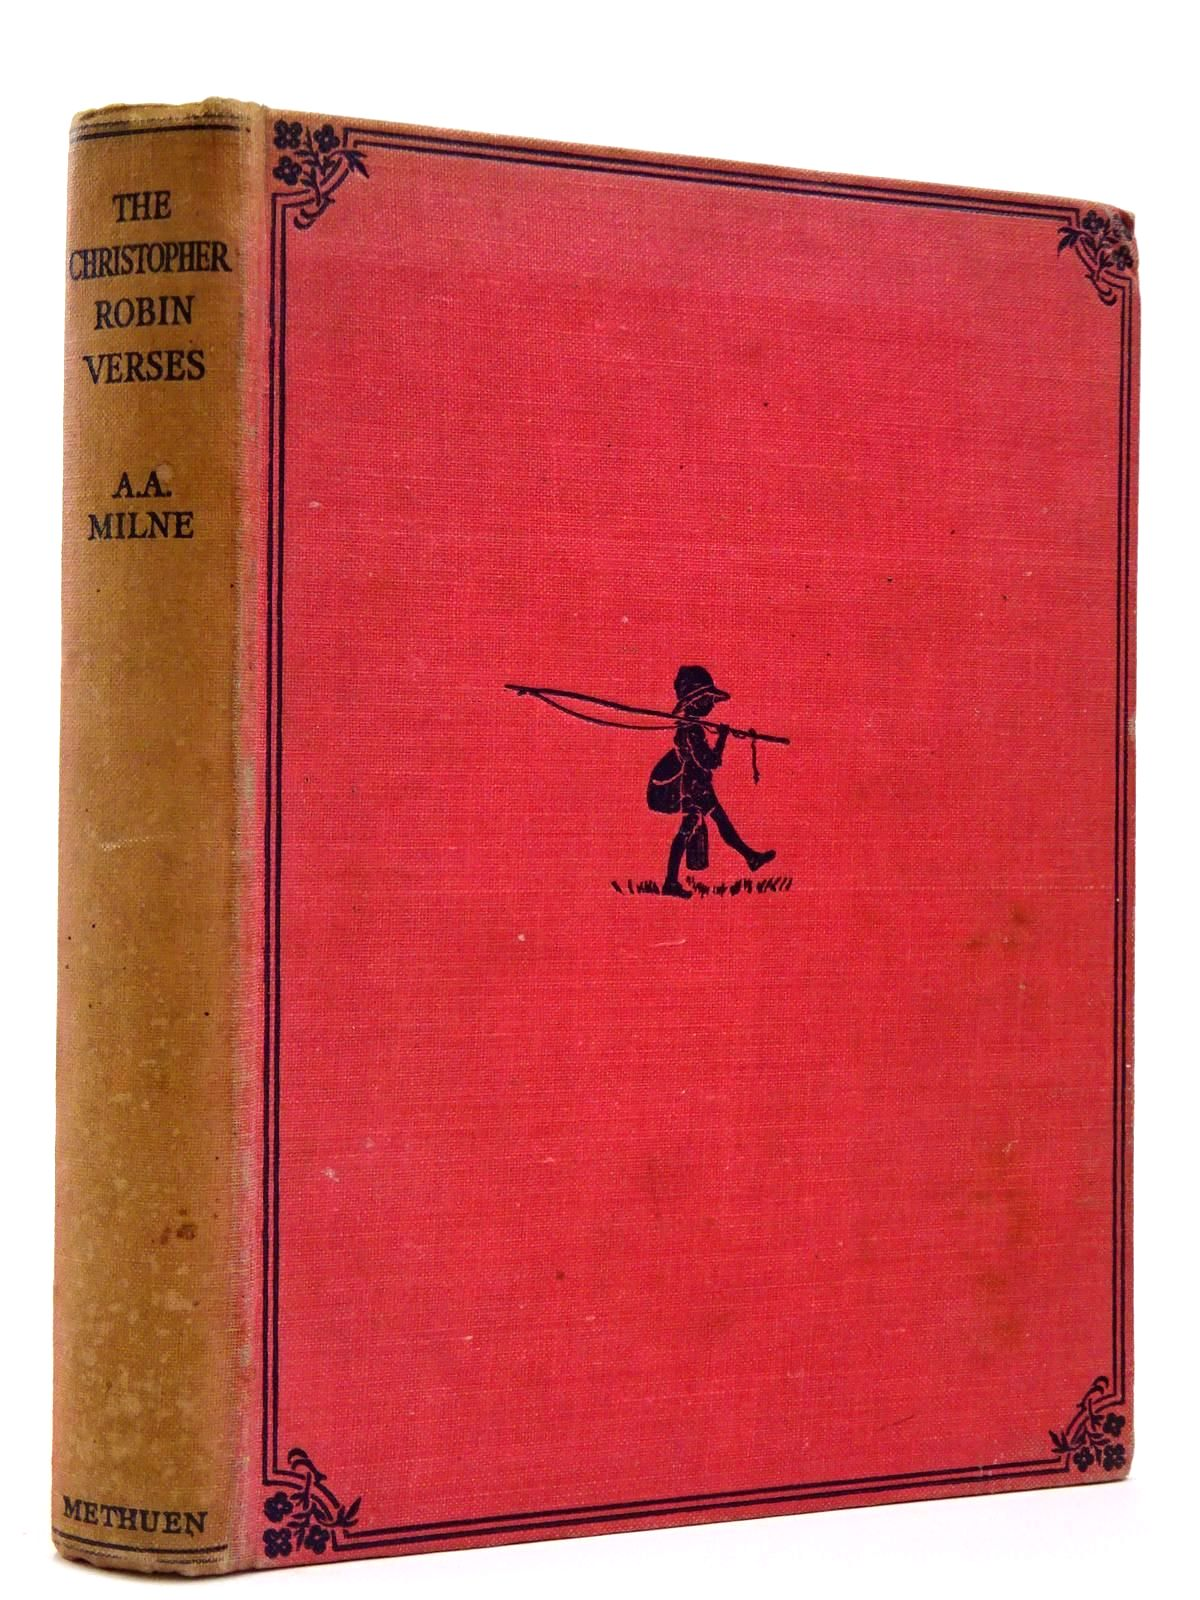 Photo of THE CHRISTOPHER ROBIN VERSES written by Milne, A.A. illustrated by Shepard, E.H. published by Methuen & Co. Ltd. (STOCK CODE: 2129406)  for sale by Stella & Rose's Books